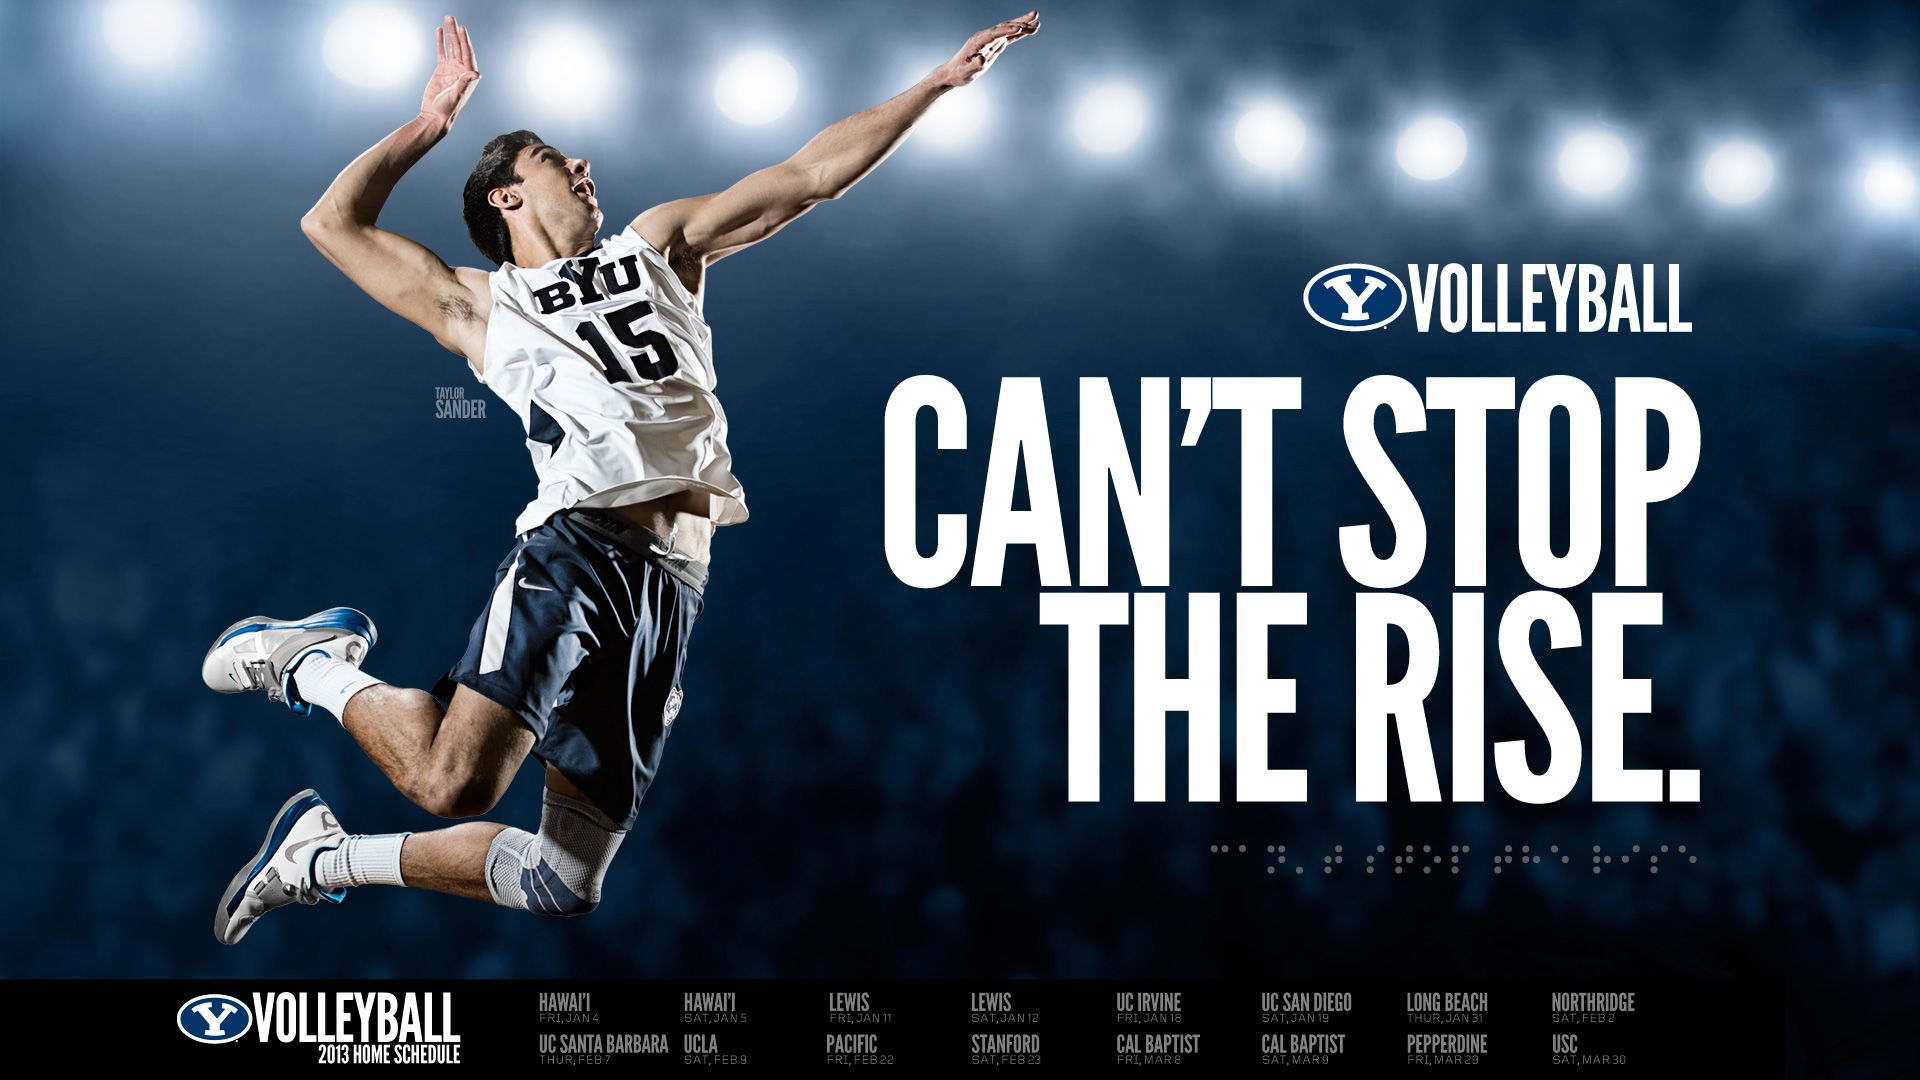 Volleyball Wallpapers Hd Quotes Backgrounds With Design Pictures 800 600 Volleyball Wal Volleyball Quotes Volleyball Wallpaper Inspirational Volleyball Quotes